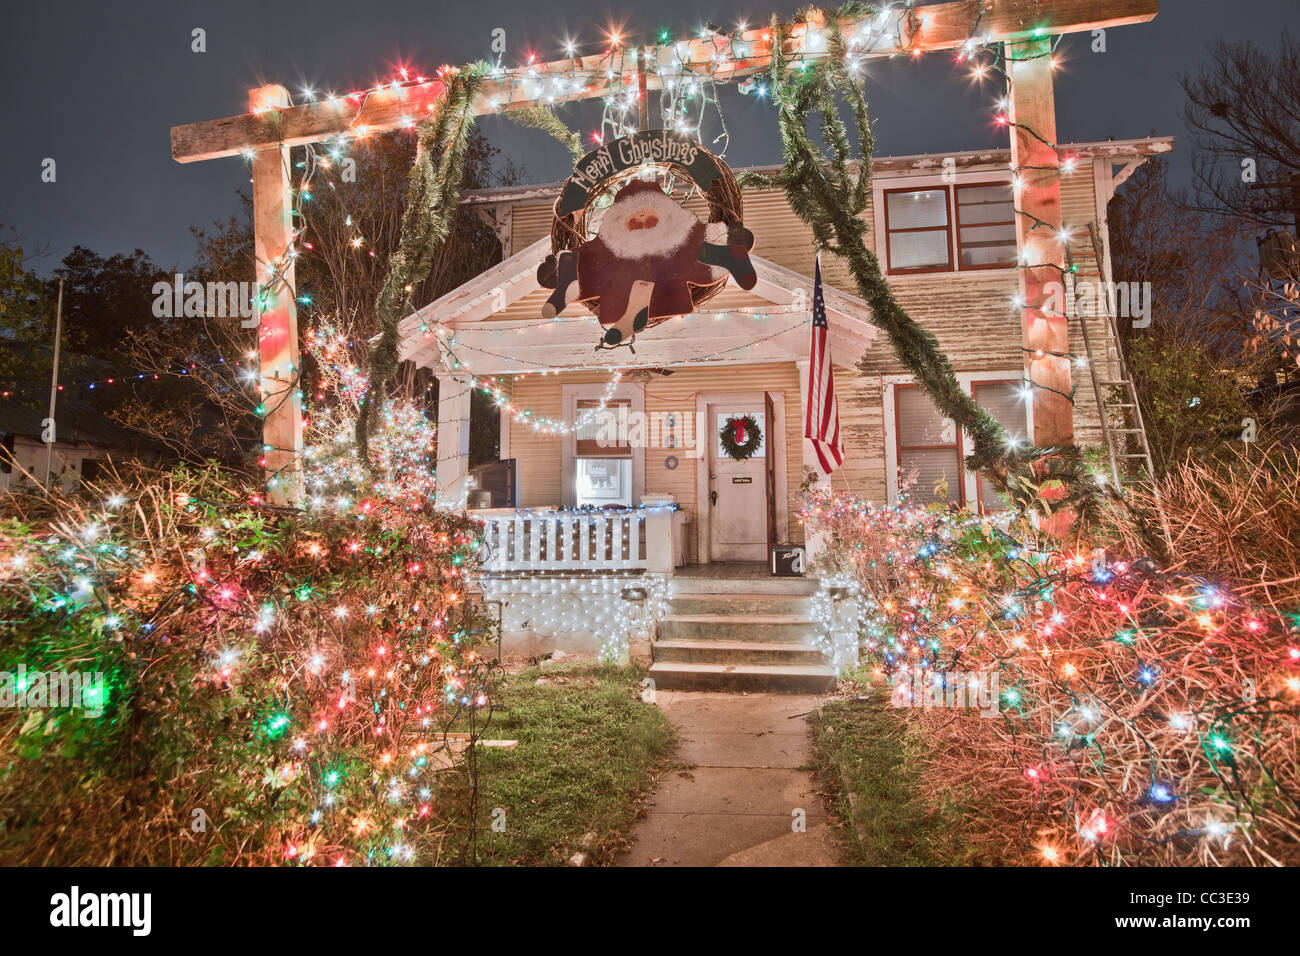 Christmas Lights In The Austin Texas 37th Street District Stock Photo Alamy